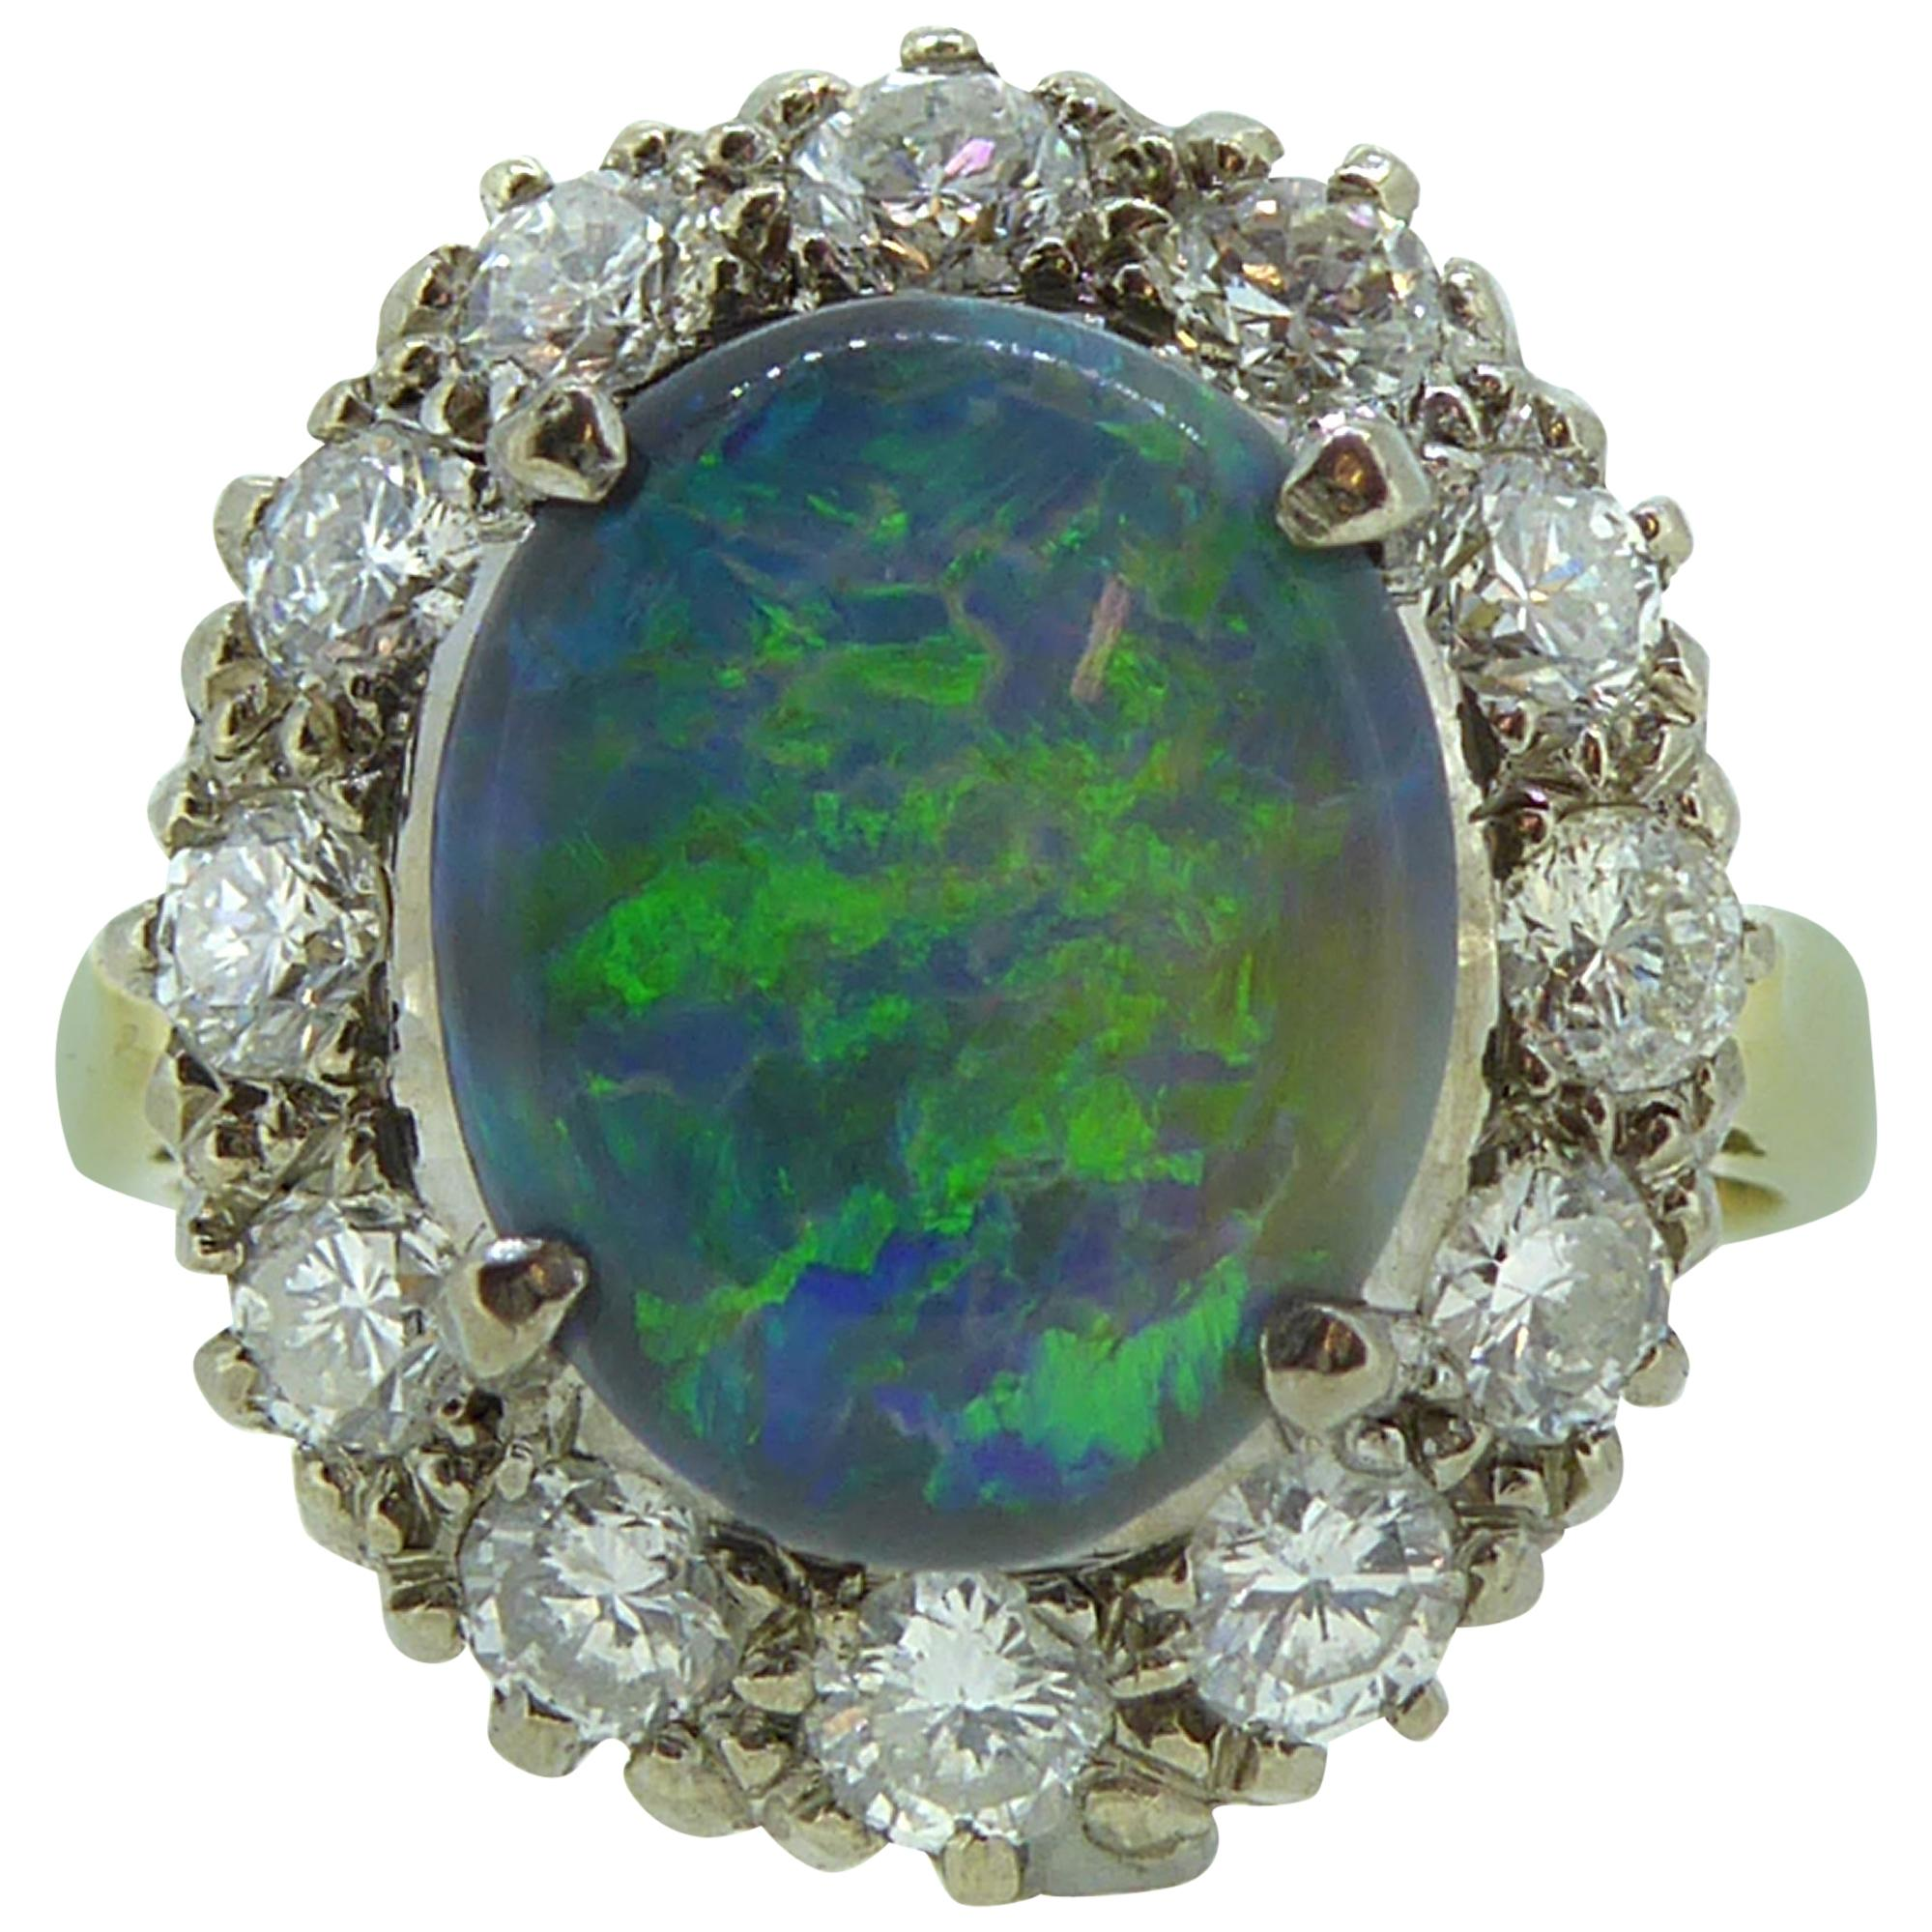 3395e5d57ffadb 1.20 Carat Opal and Diamond Cluster Ring For Sale at 1stdibs